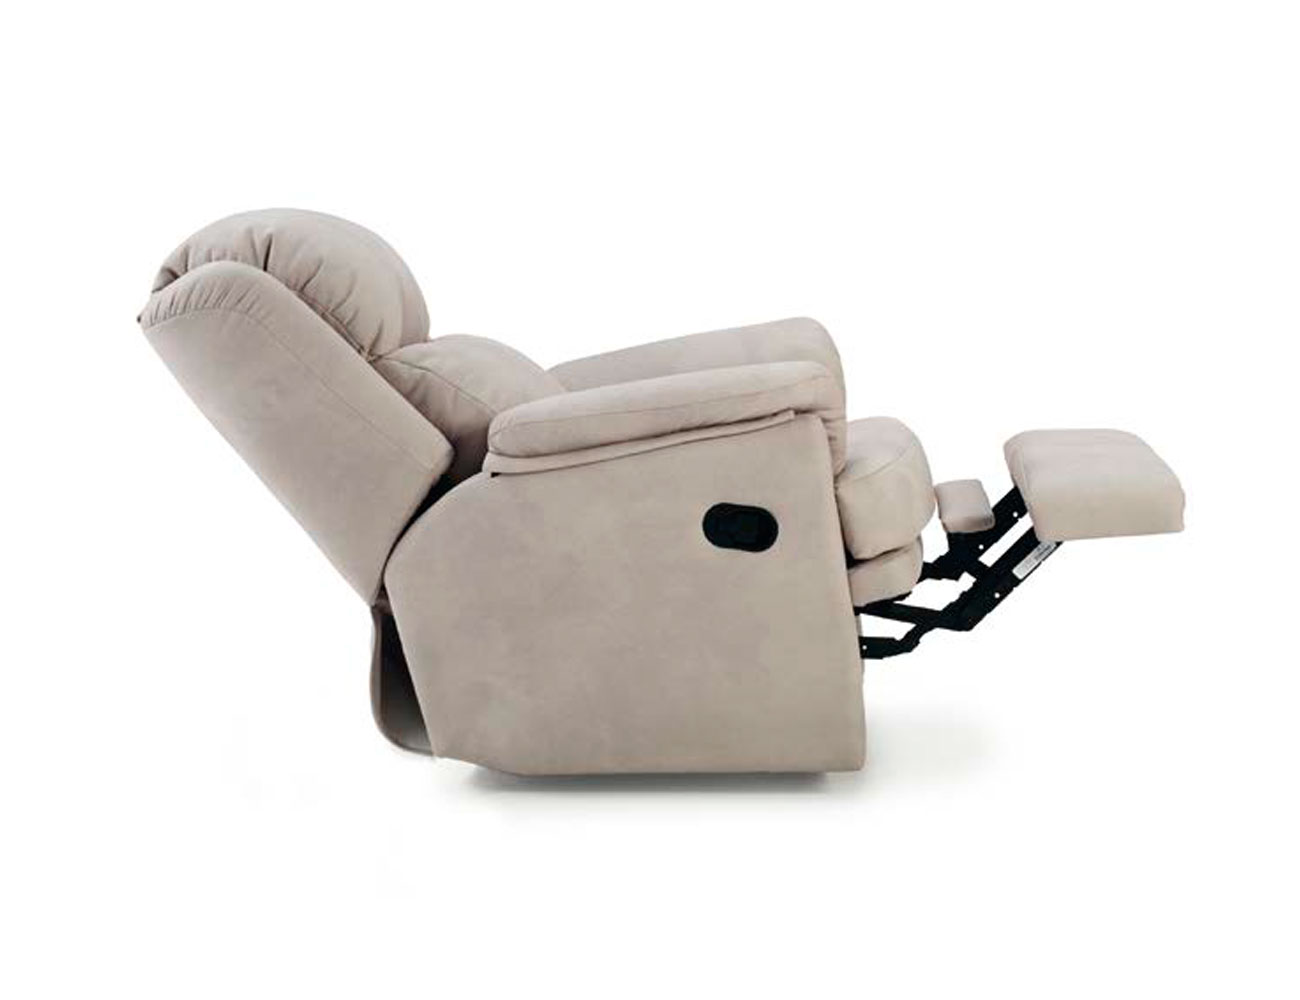 Sillon relax manual palanca esther 13